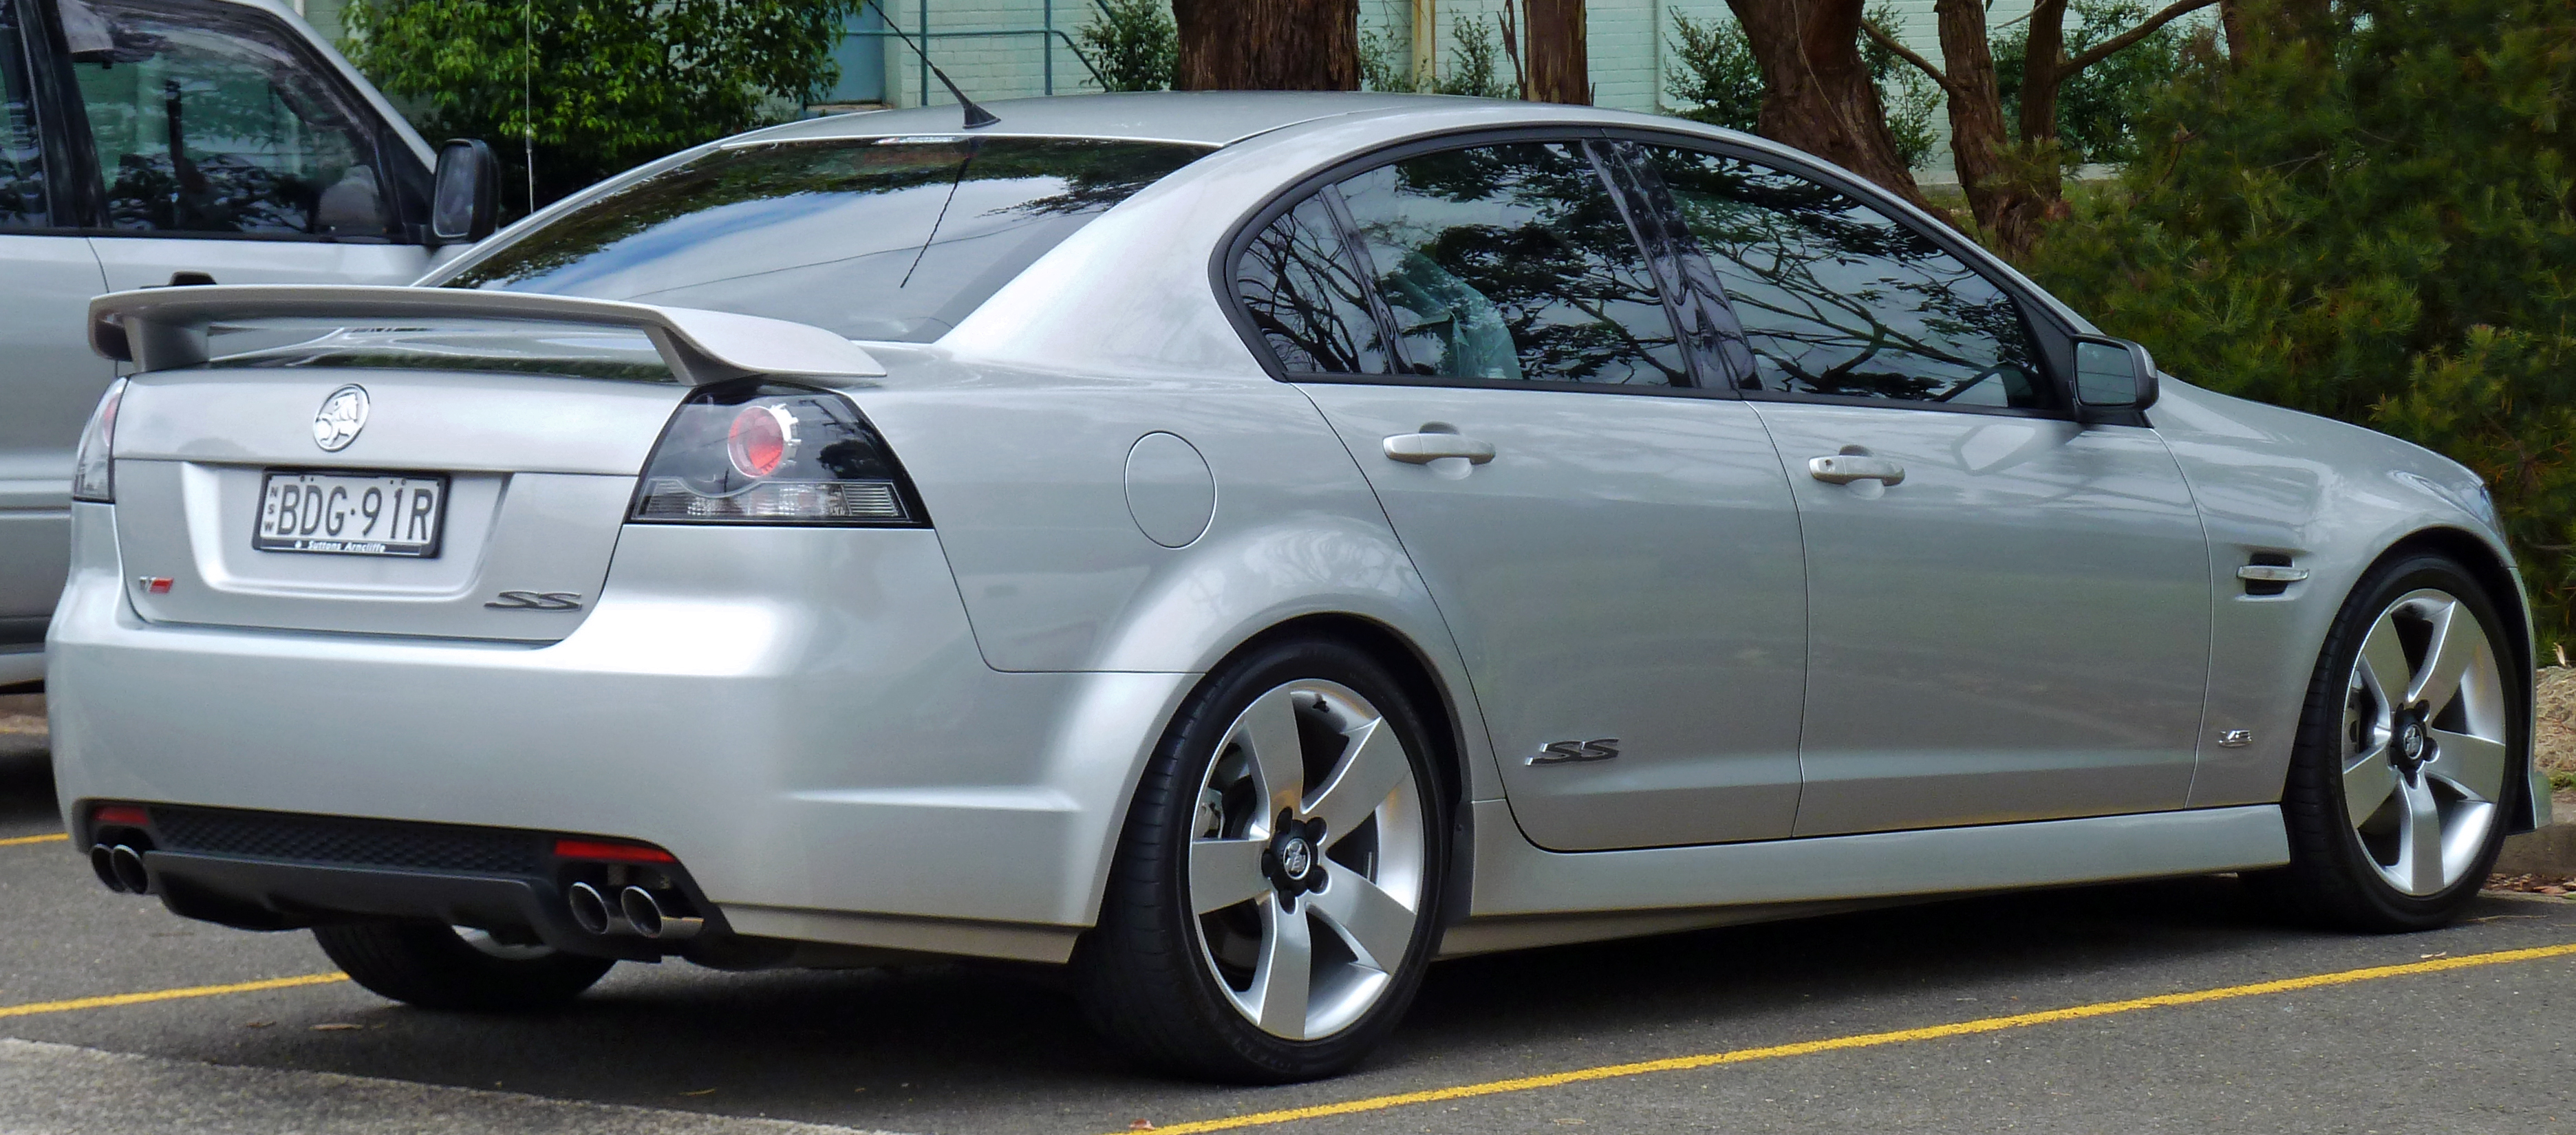 2009 Holden Commodore Photos Informations Articles